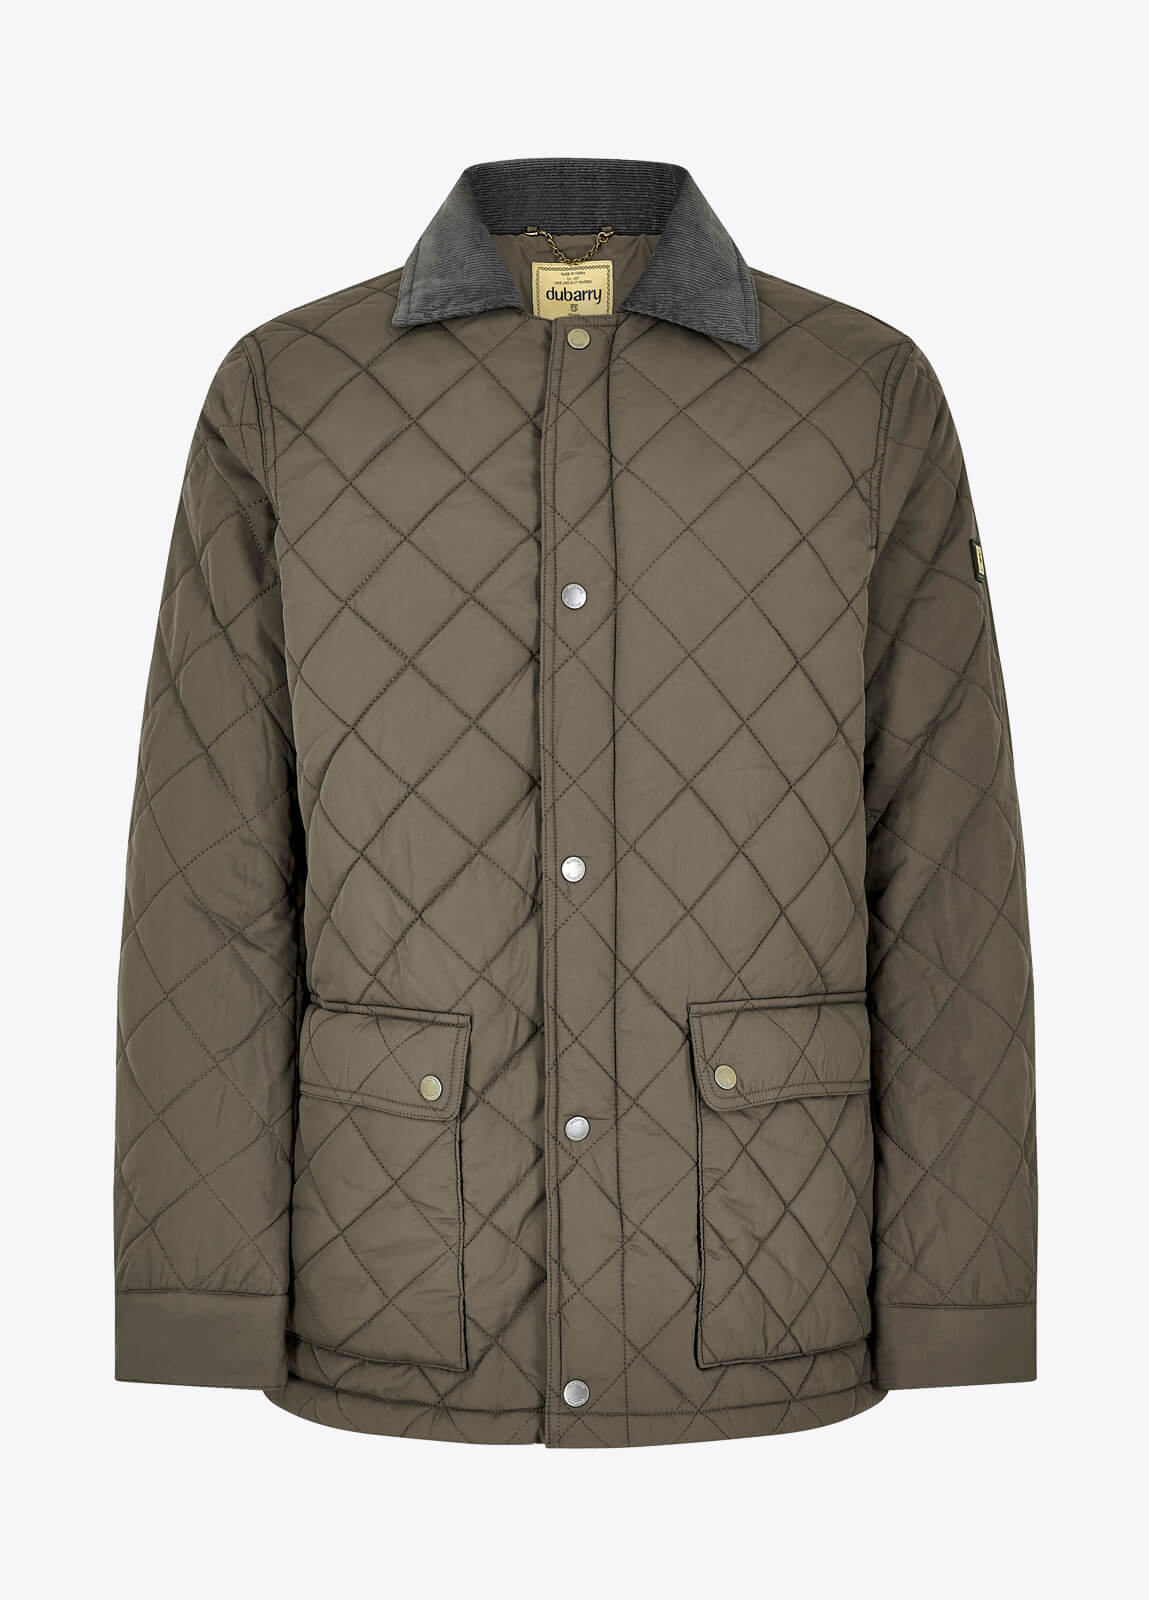 Adare Quilted Jacket - Smoke